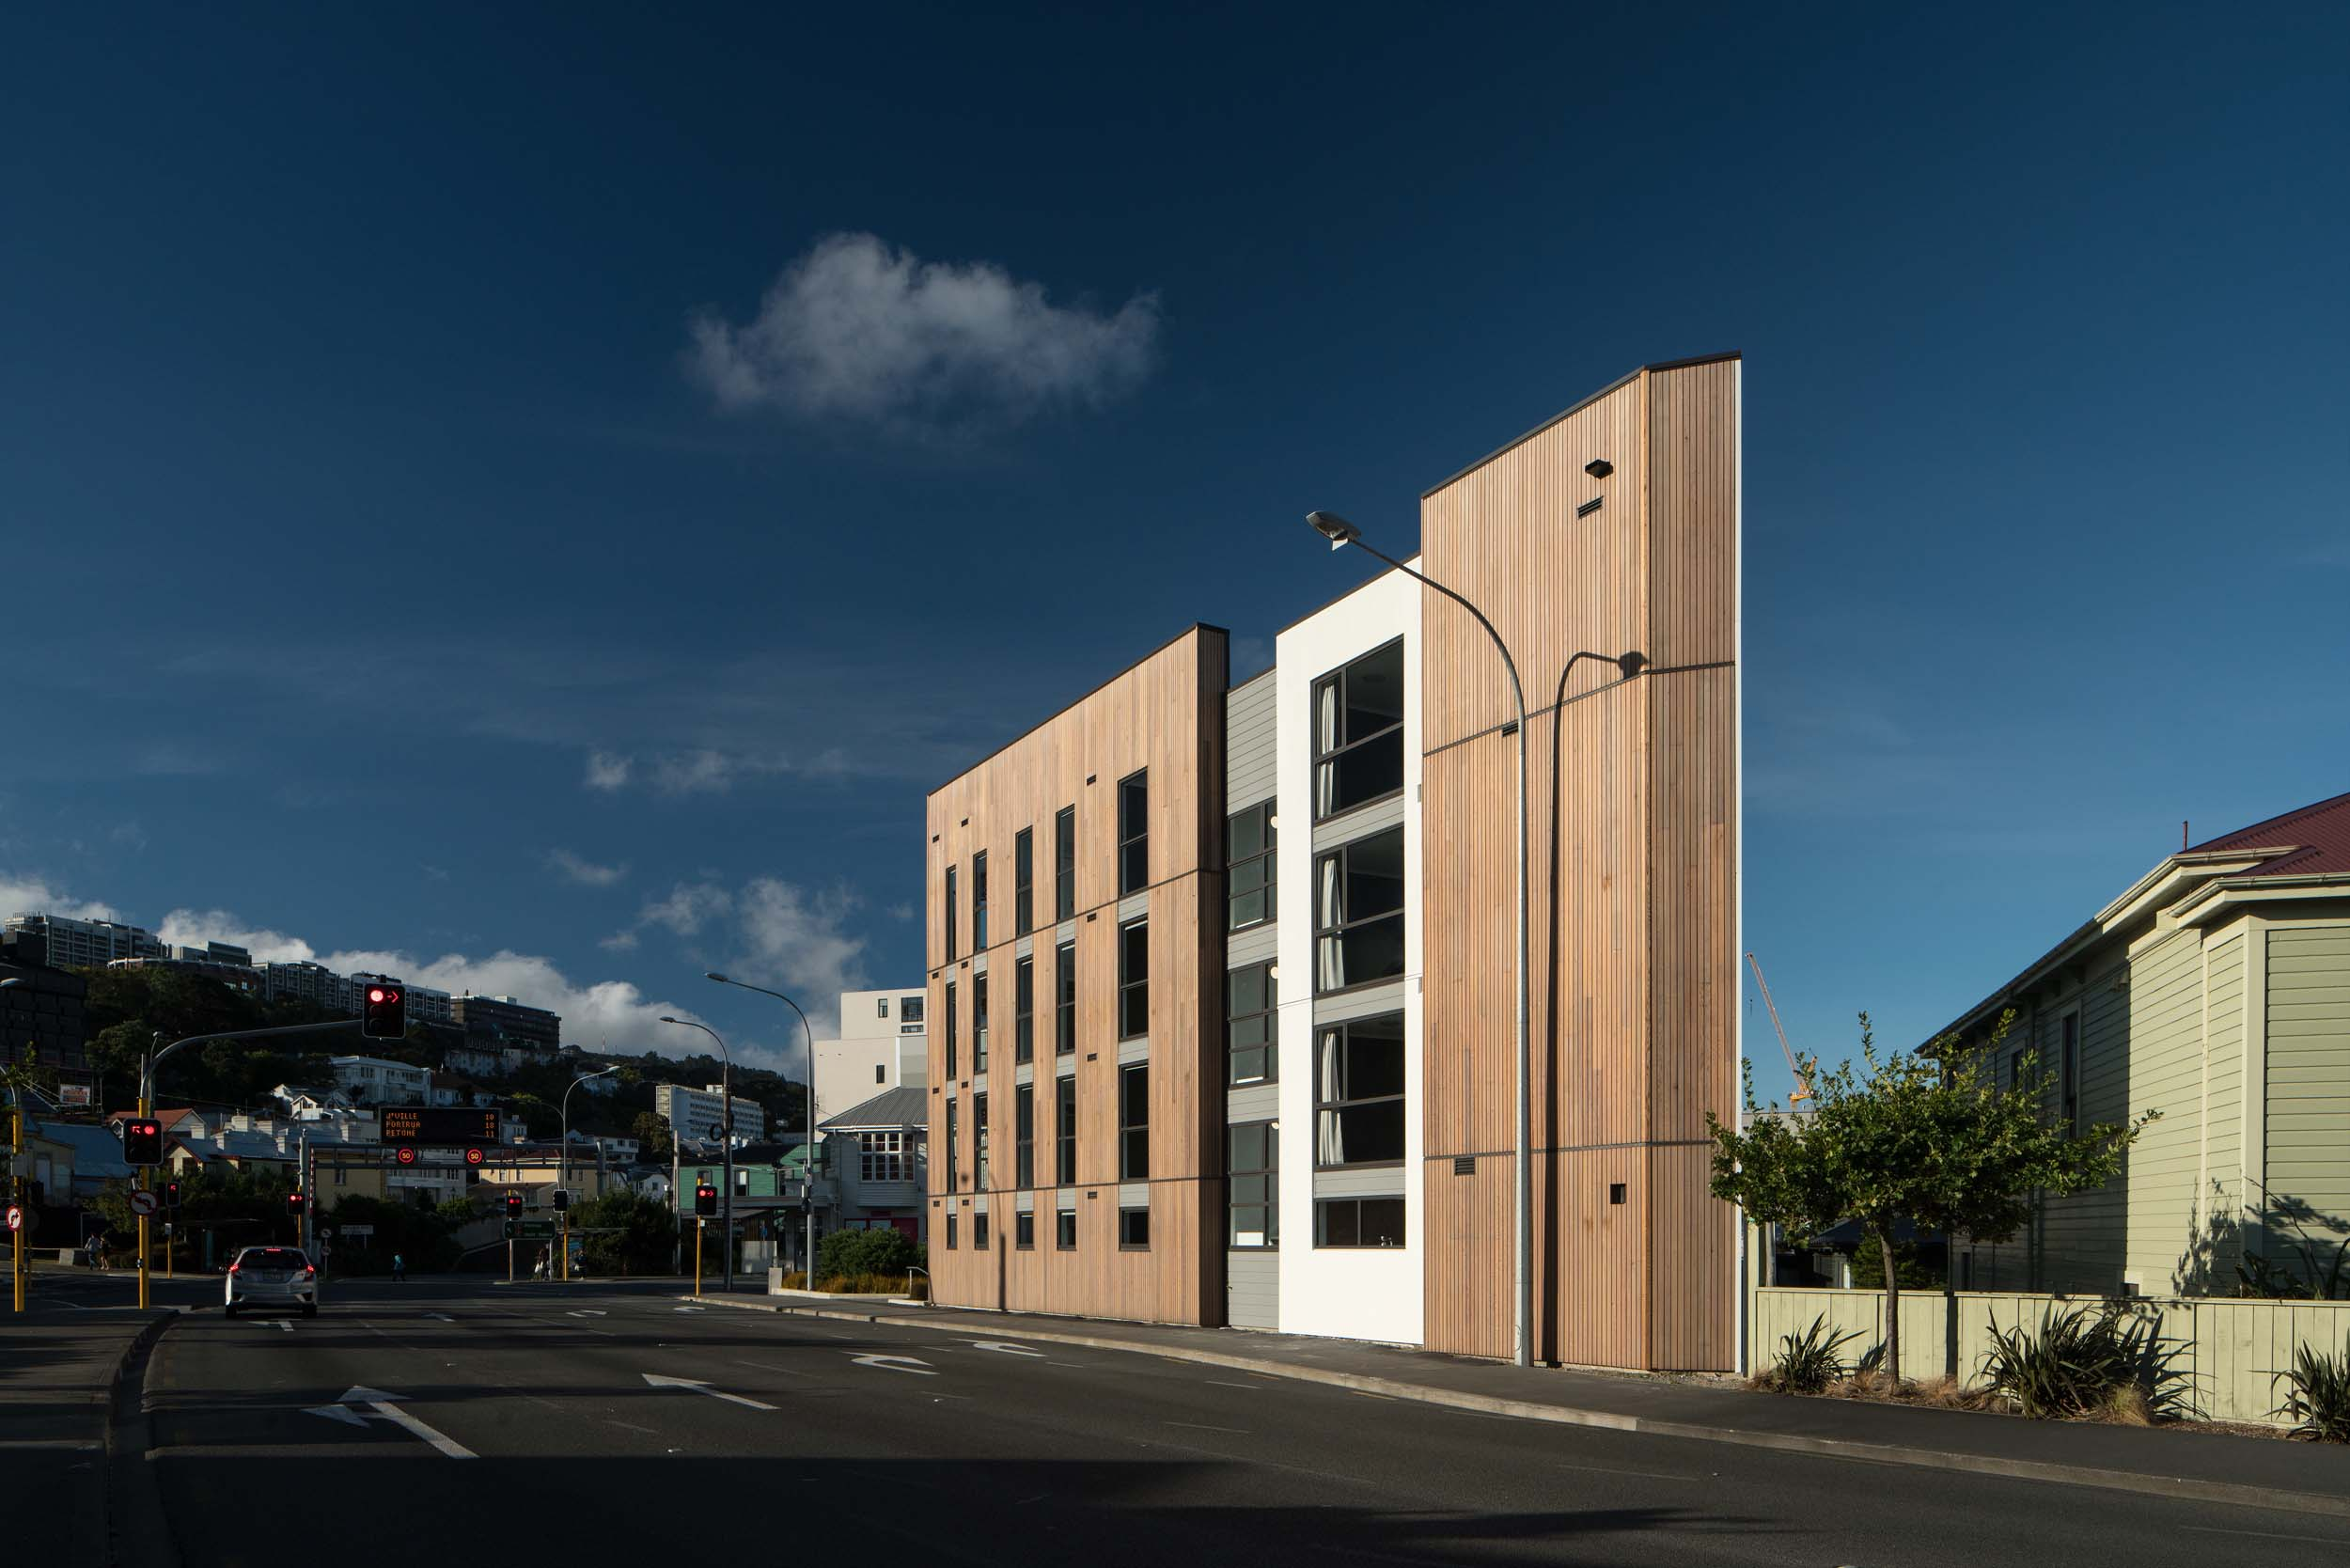 83 ABEL SMITH STREET BY ARCHAUS. EXTERIOR SHOT.